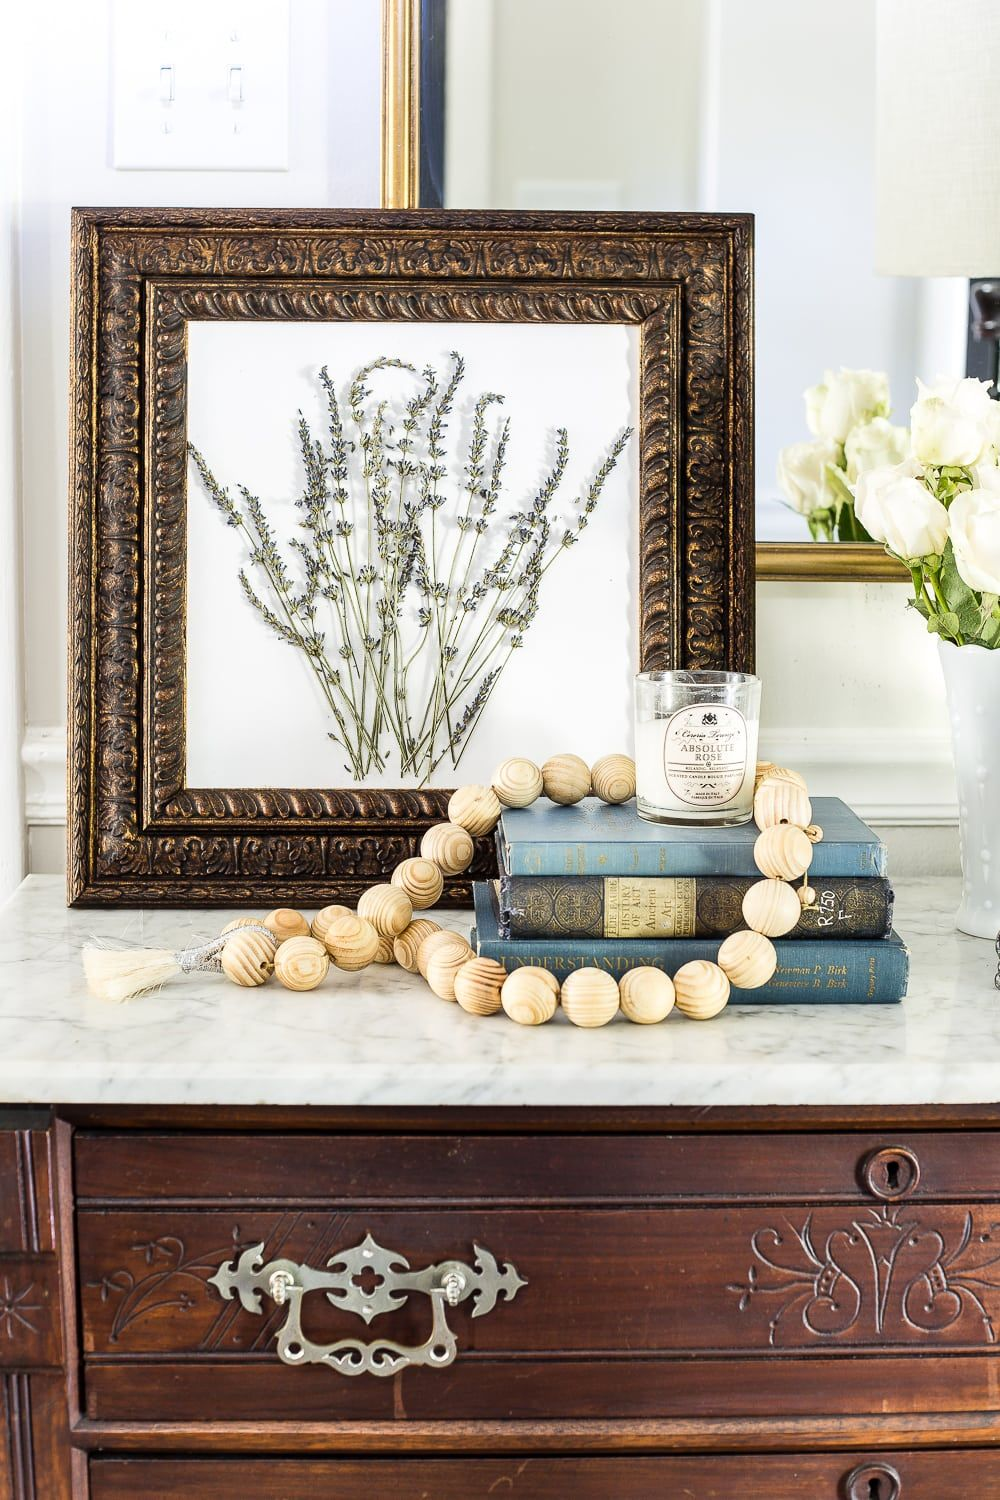 Home Decorating Online Games Must Have Thrift Store Staple Old Frames Transformed Using Aging Wax And DIY Art